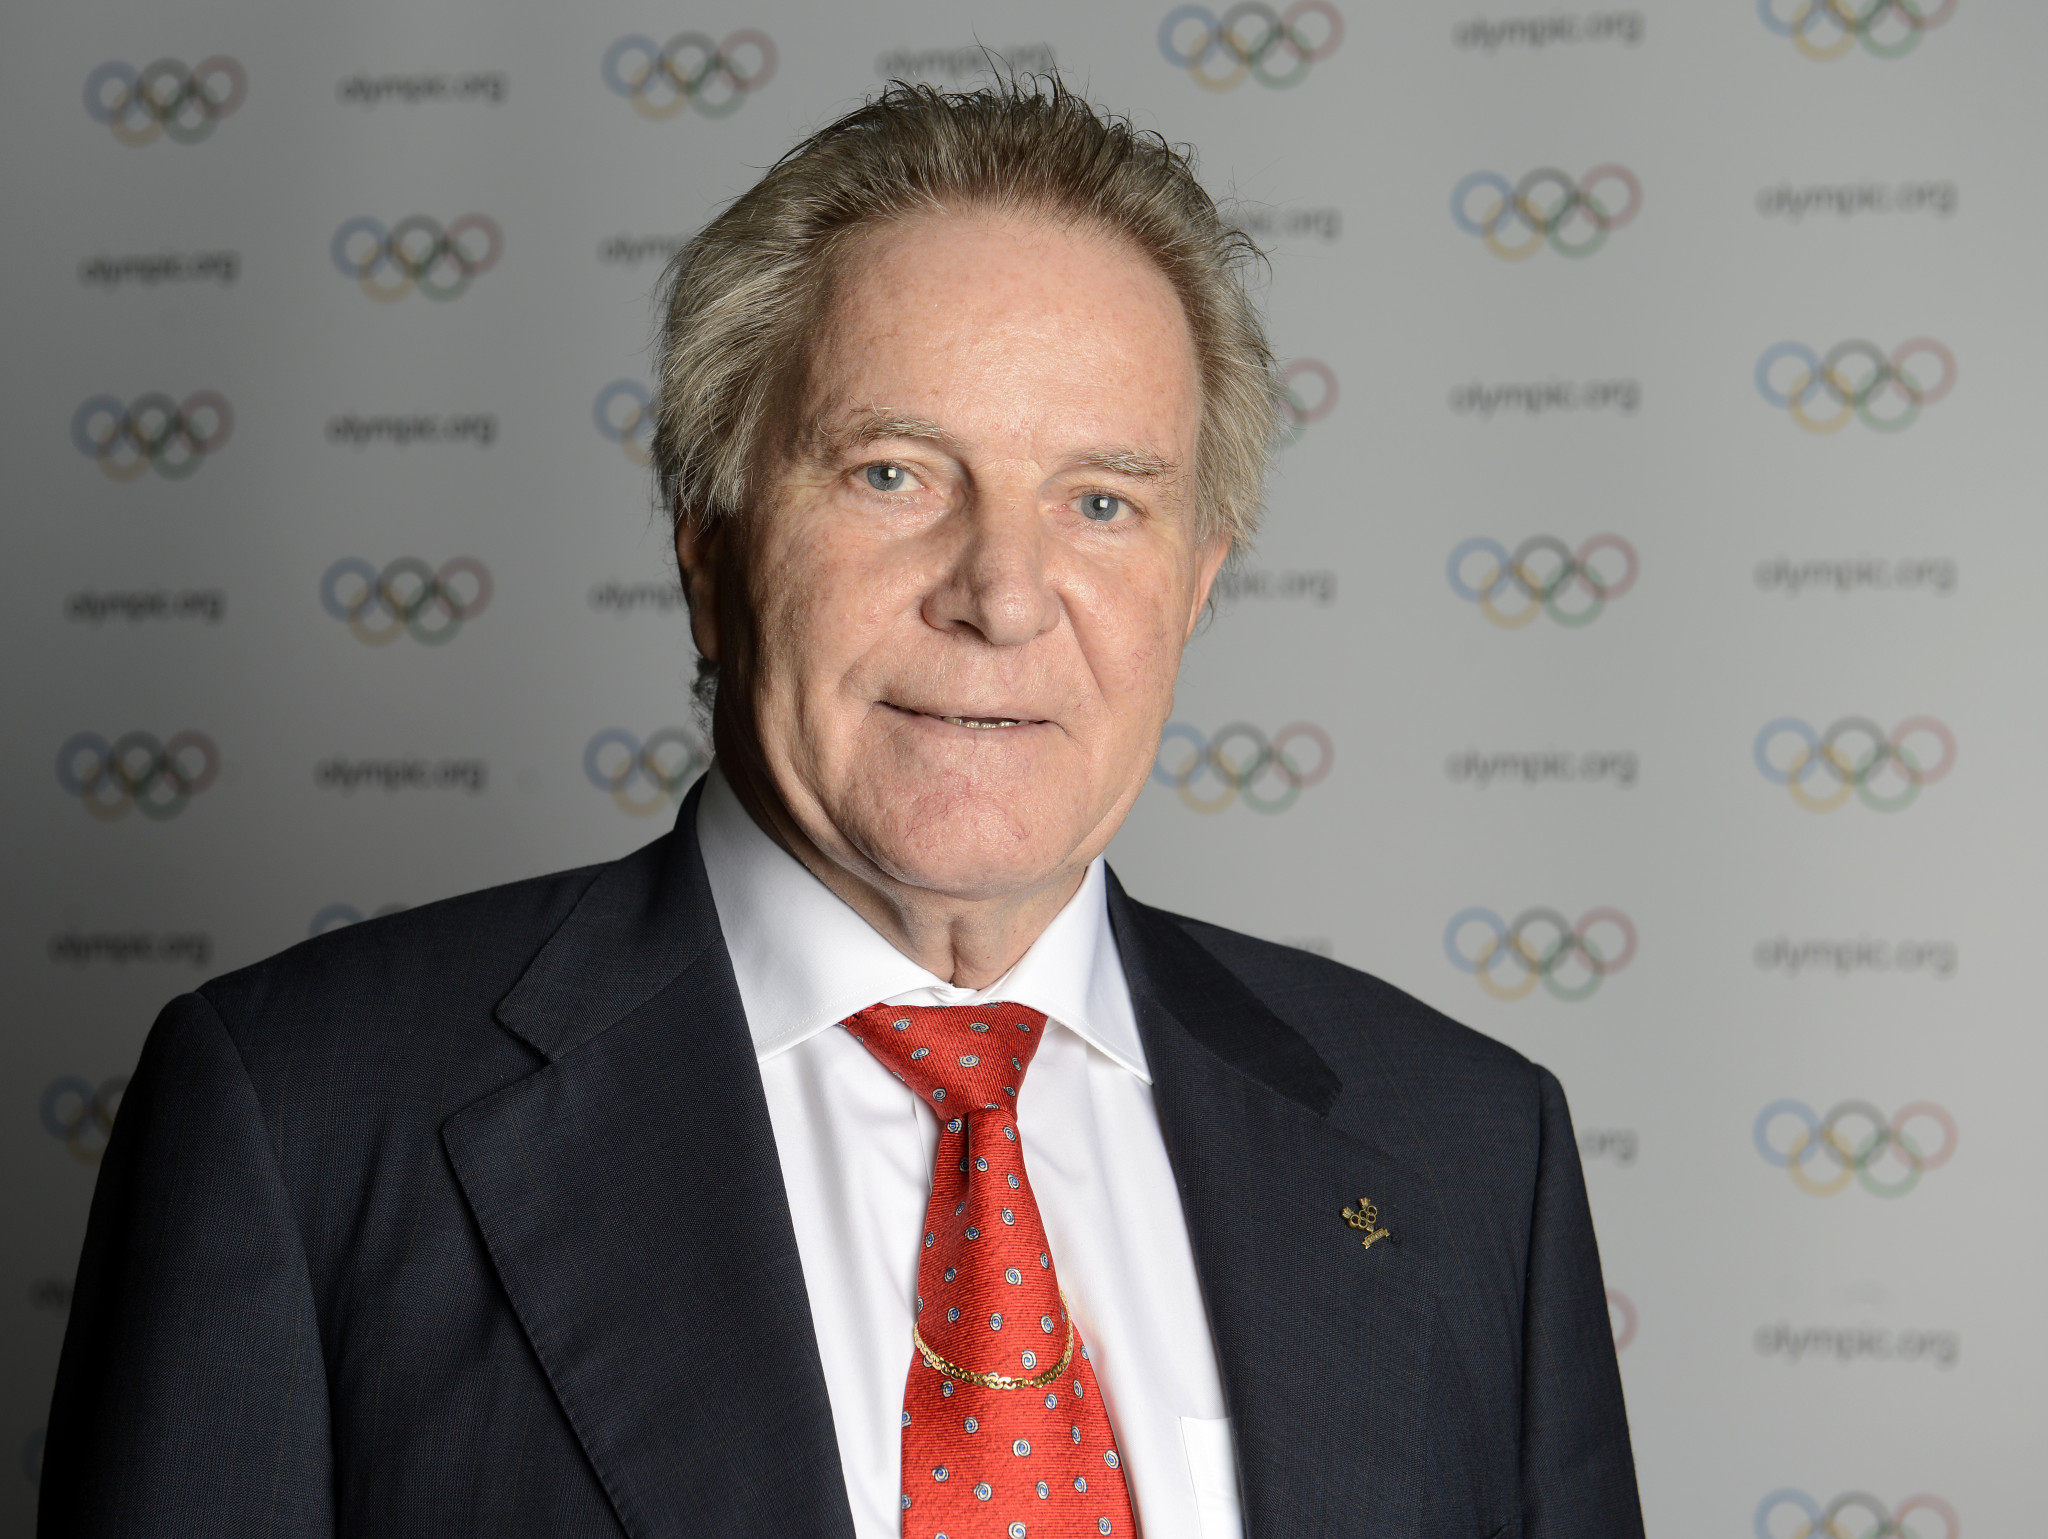 Switzerland's Denis Oswald is set to stand for another four-year term on the IOC Executive Board at the Session in Tokyo tomorrow ©IOC